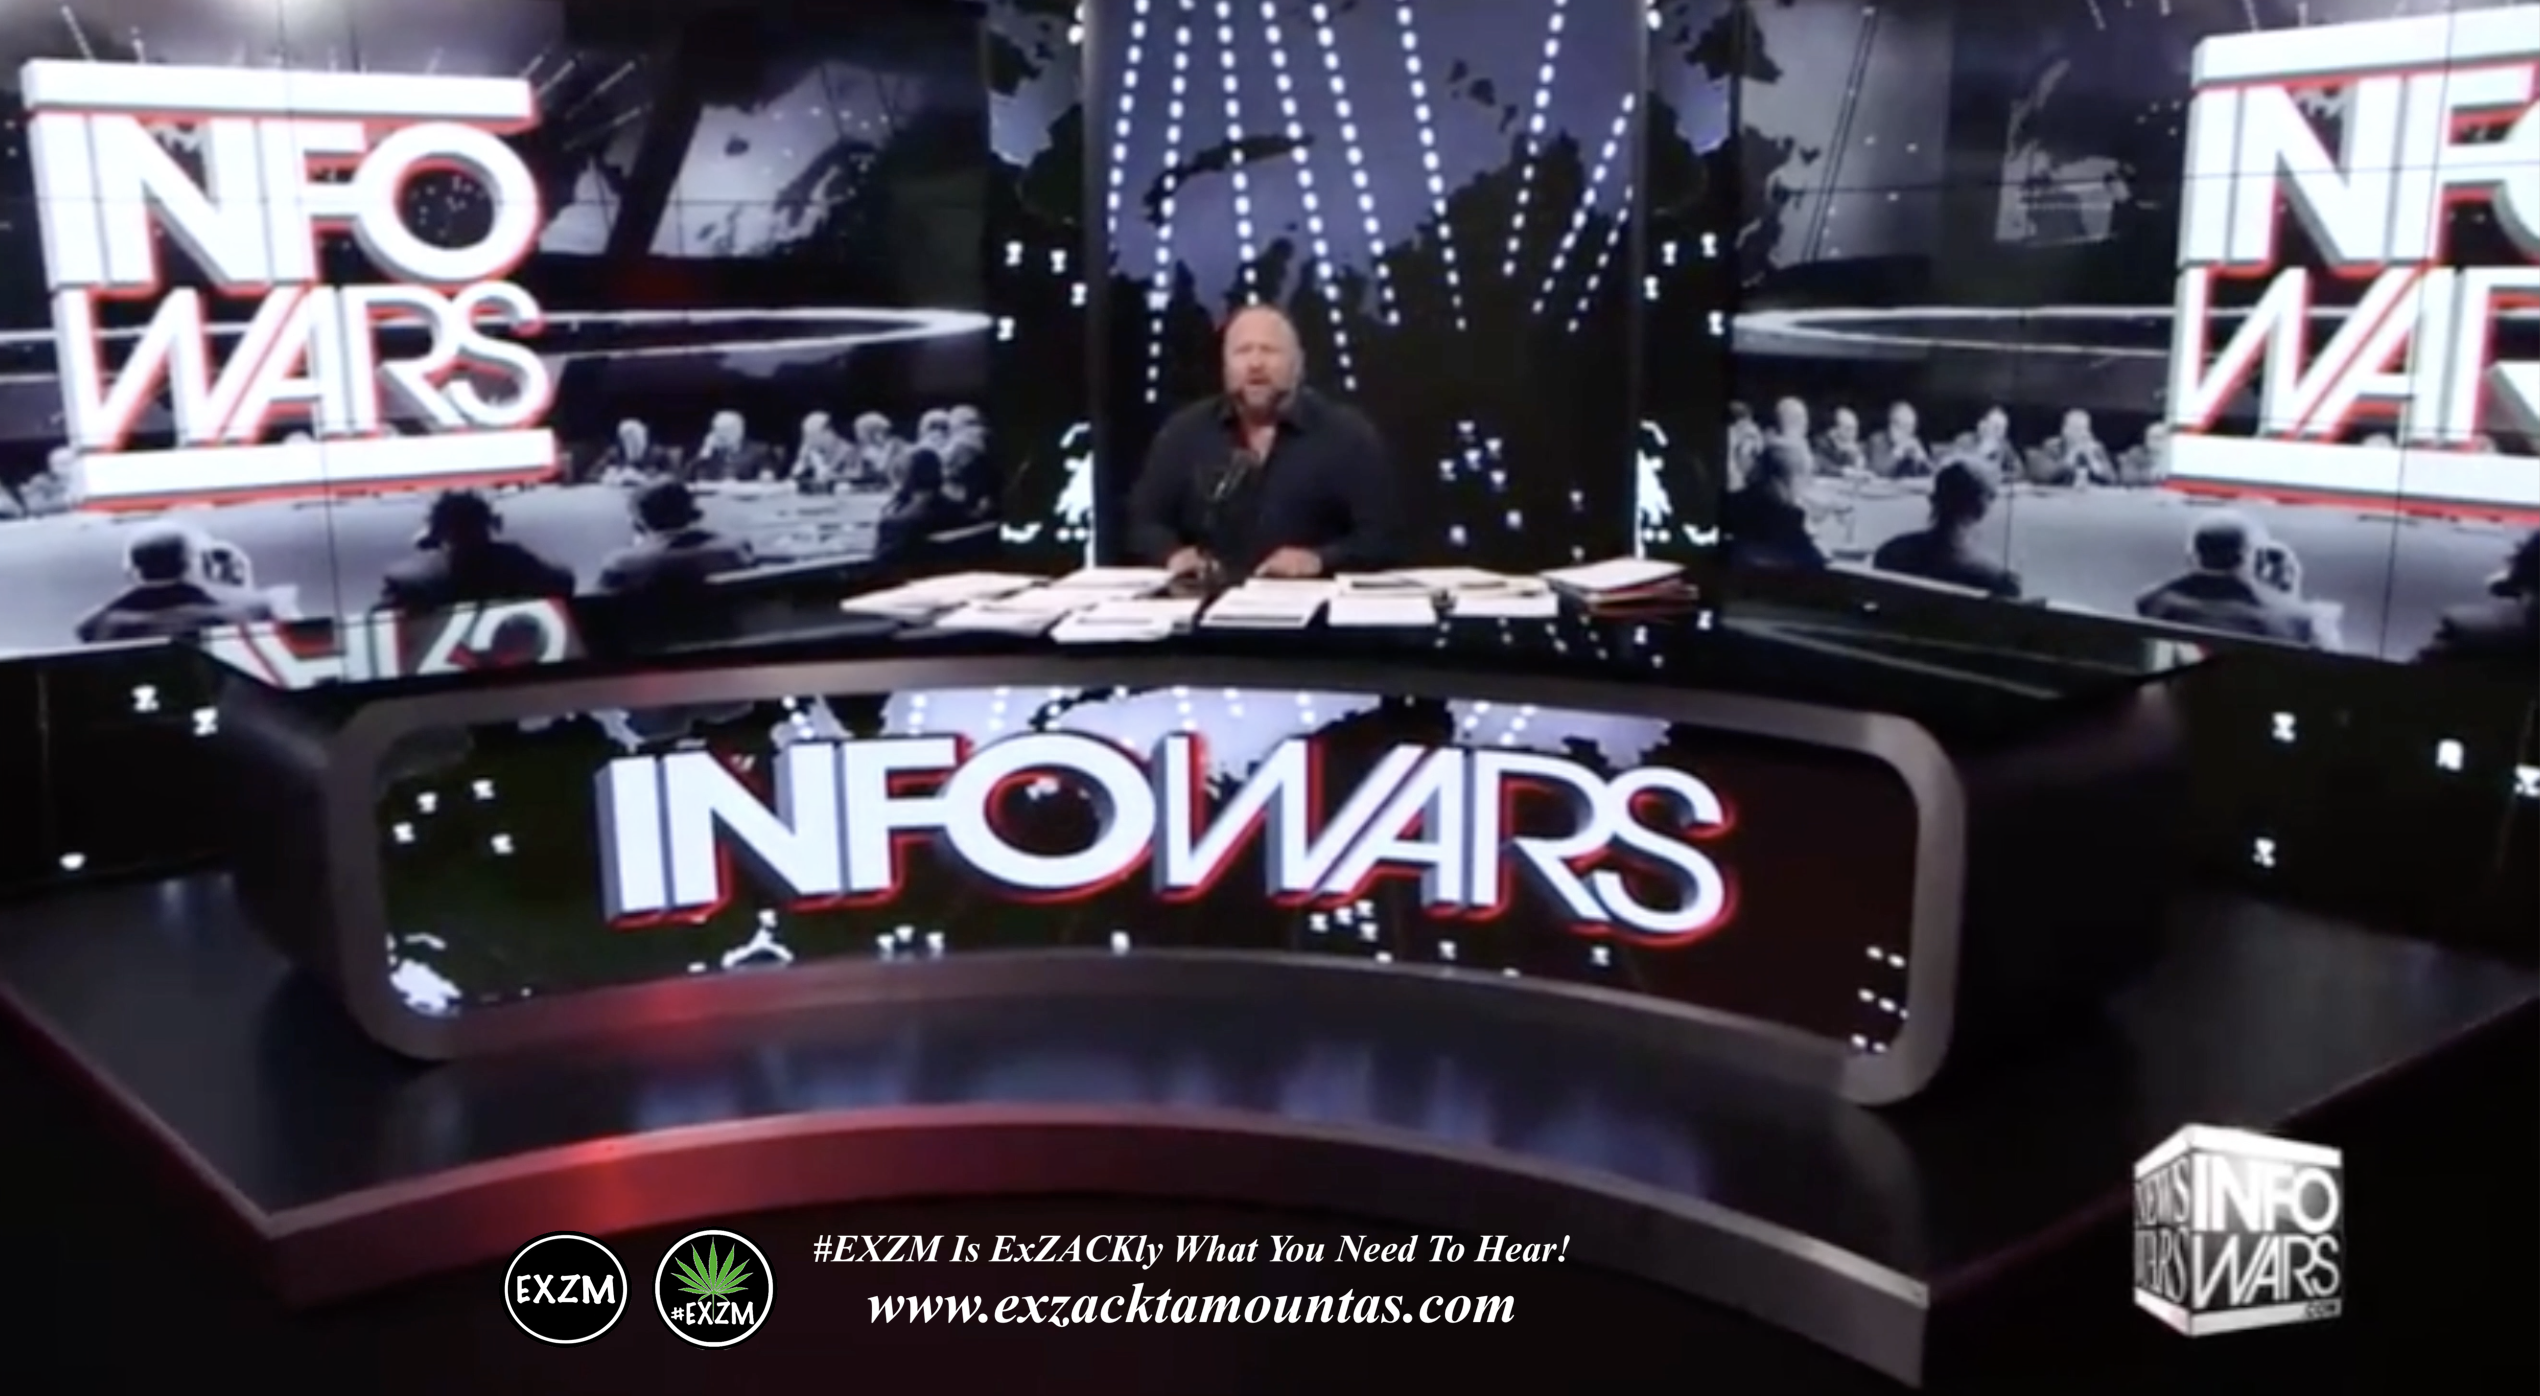 Alex Jones Live Infowars Studio EXZM Zack Mount April 14th 2021 copy